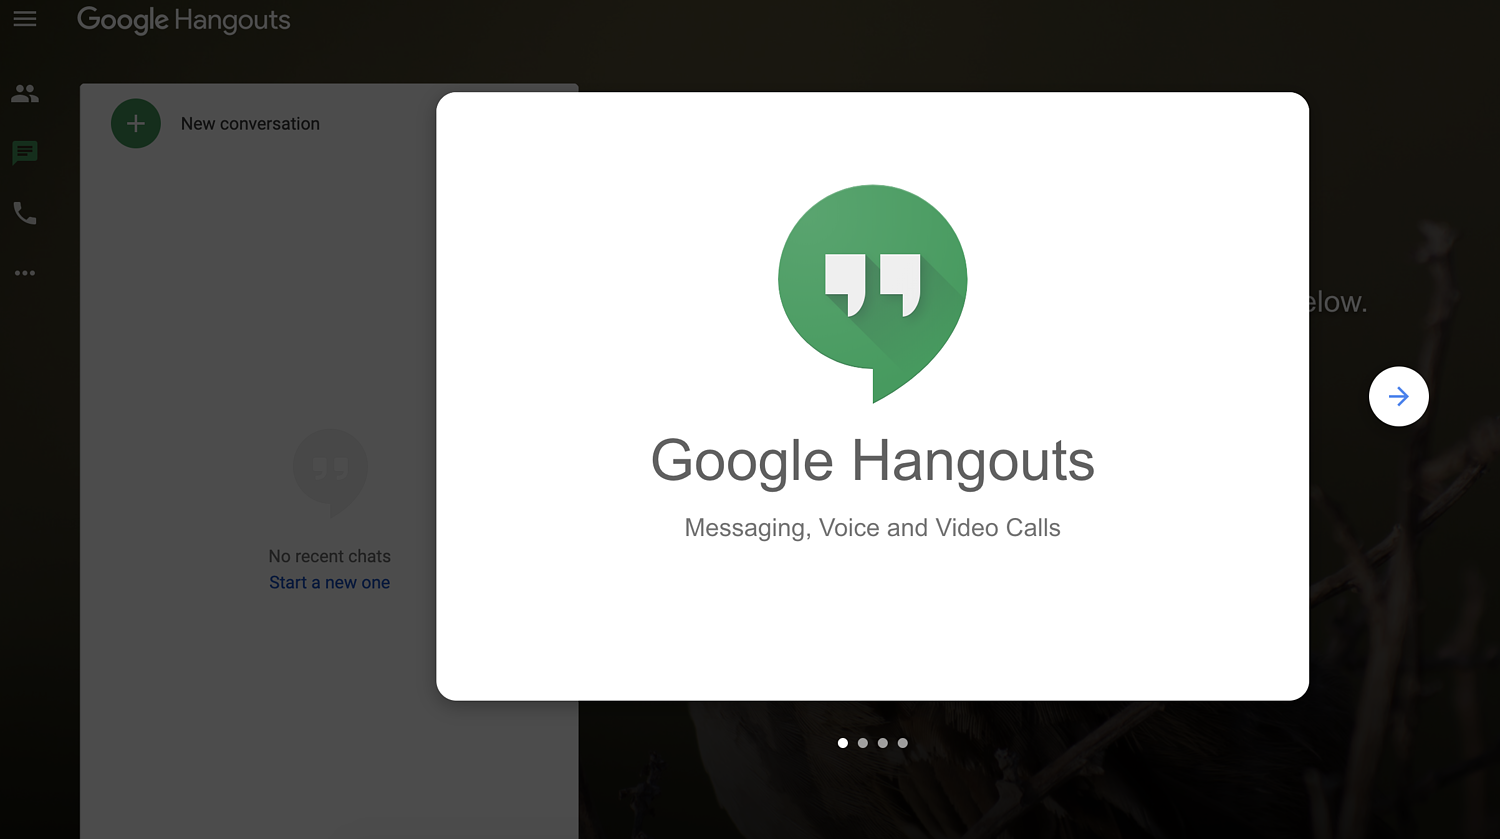 google hangouts remote work tool